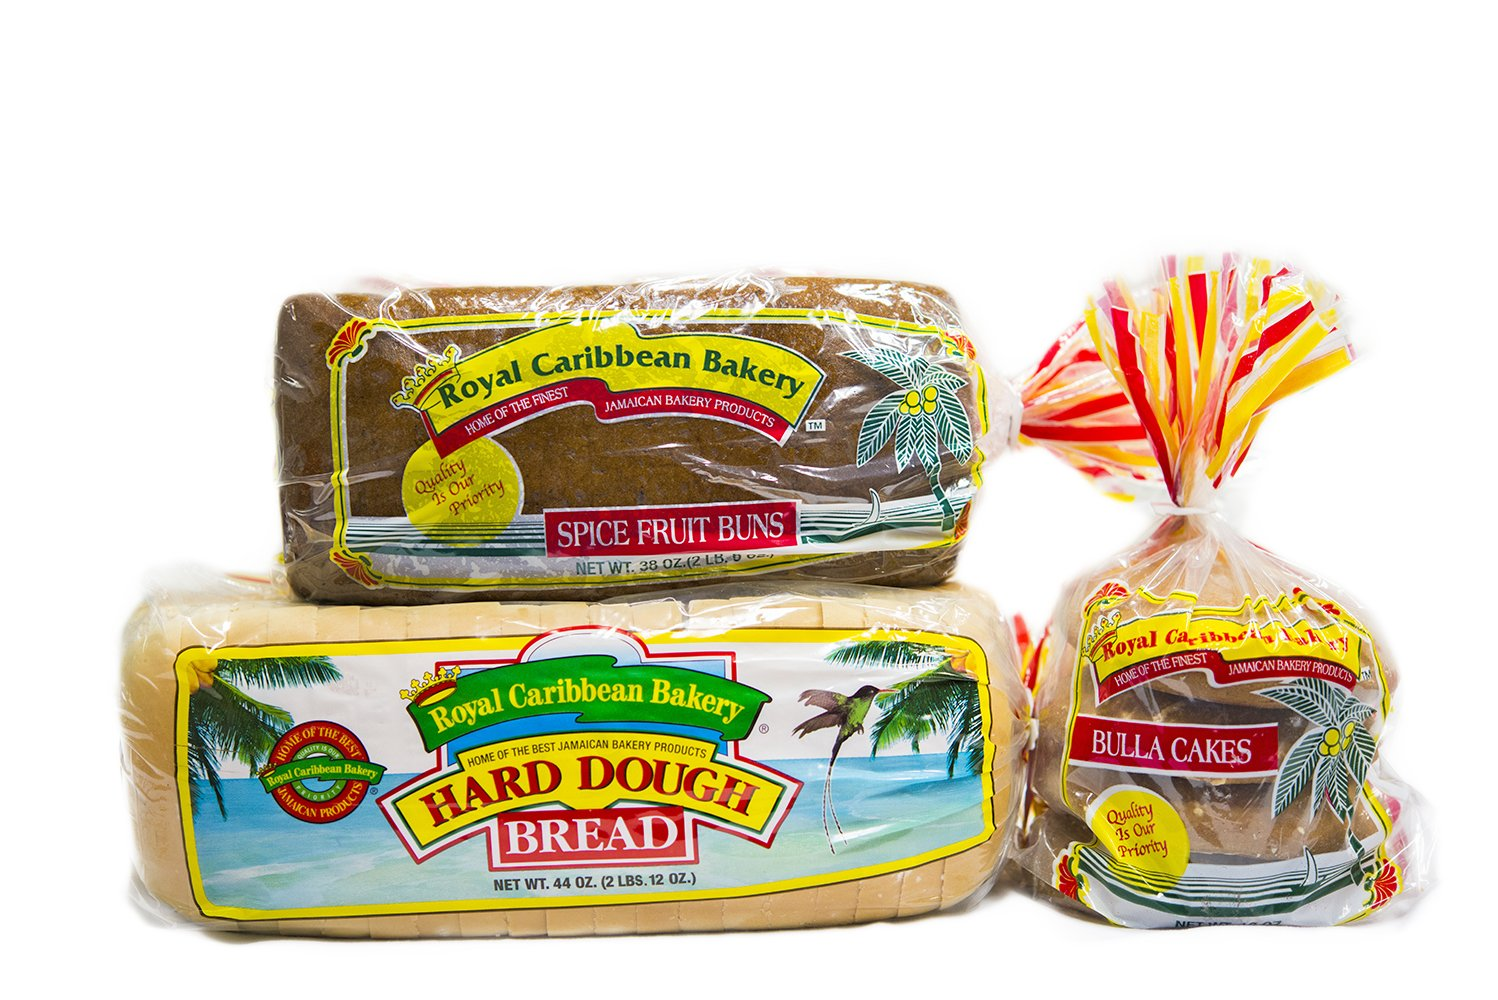 Royal Caribbean Bakery Variety Pack (Hard Dough Bread, 44 Oz.; Spiced Fruit Bun, 38 Oz.; Bulla Cakes, 16 Oz.)